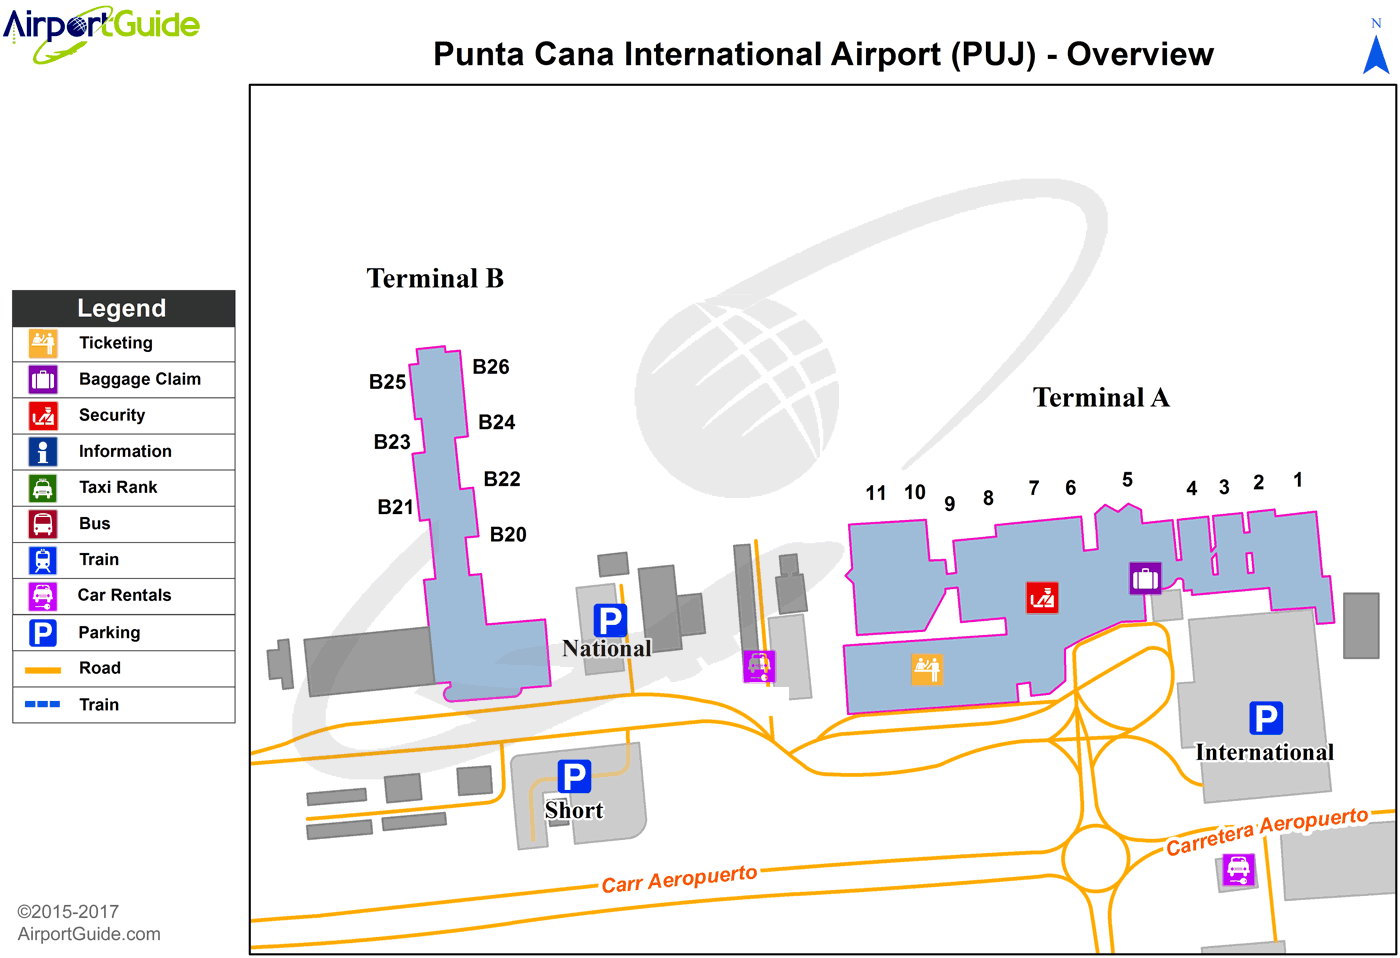 Punta Cana - Punta Cana International (PUJ) Airport Terminal Map - Overview